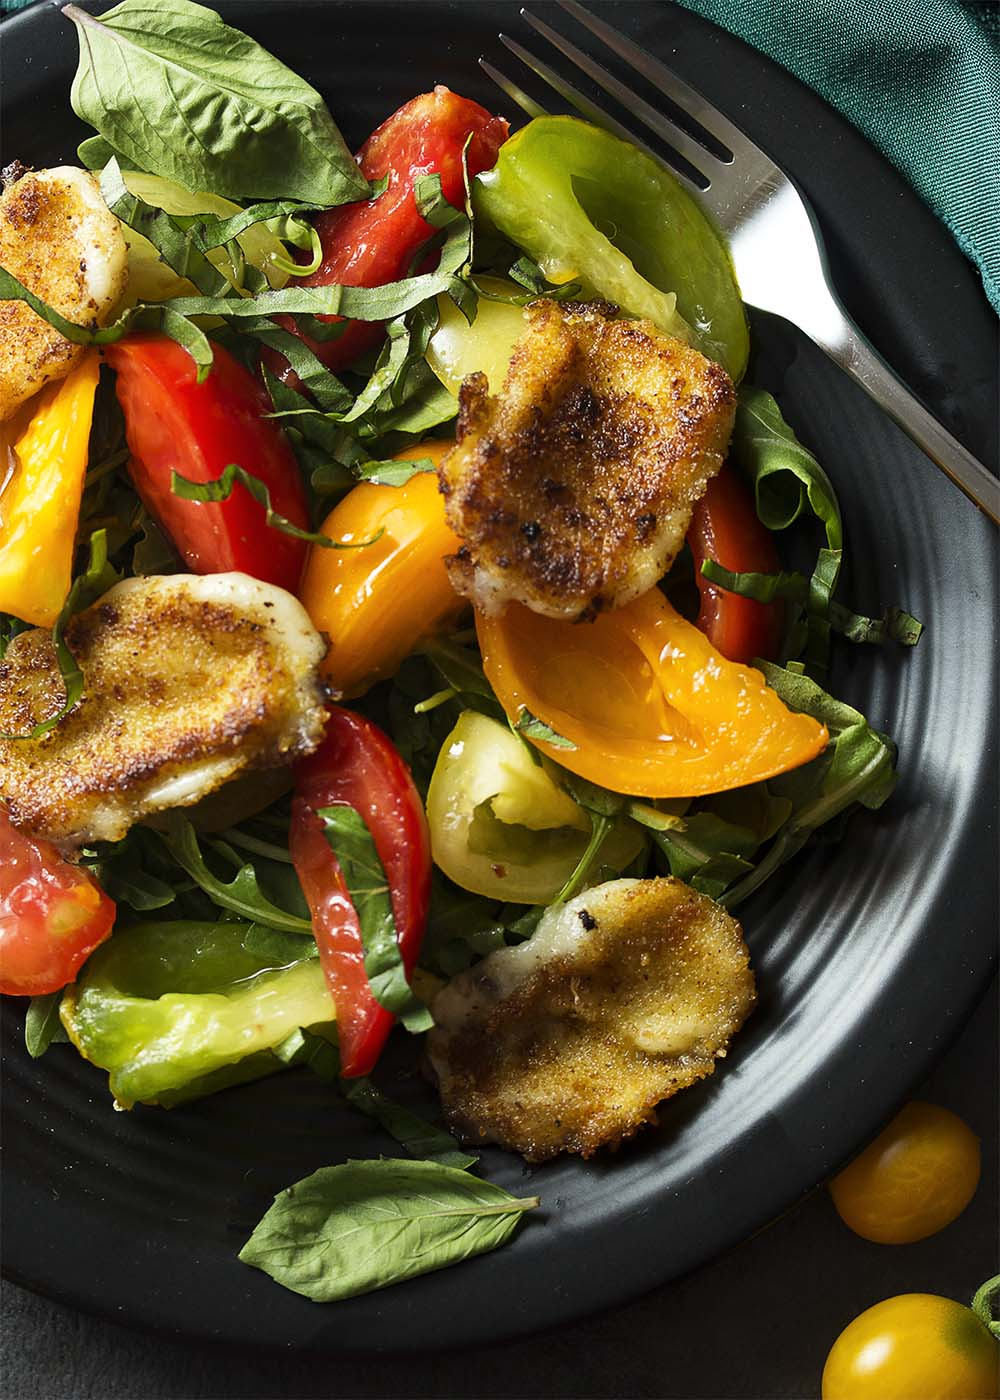 My tomato arugula salad is lightly tossed with a simple vinaigrette and topped with fried mozzarella slices which have been dredged in breadcrumbs and pan fried until golden brown and crispy. | justalittlebitofbacon.com